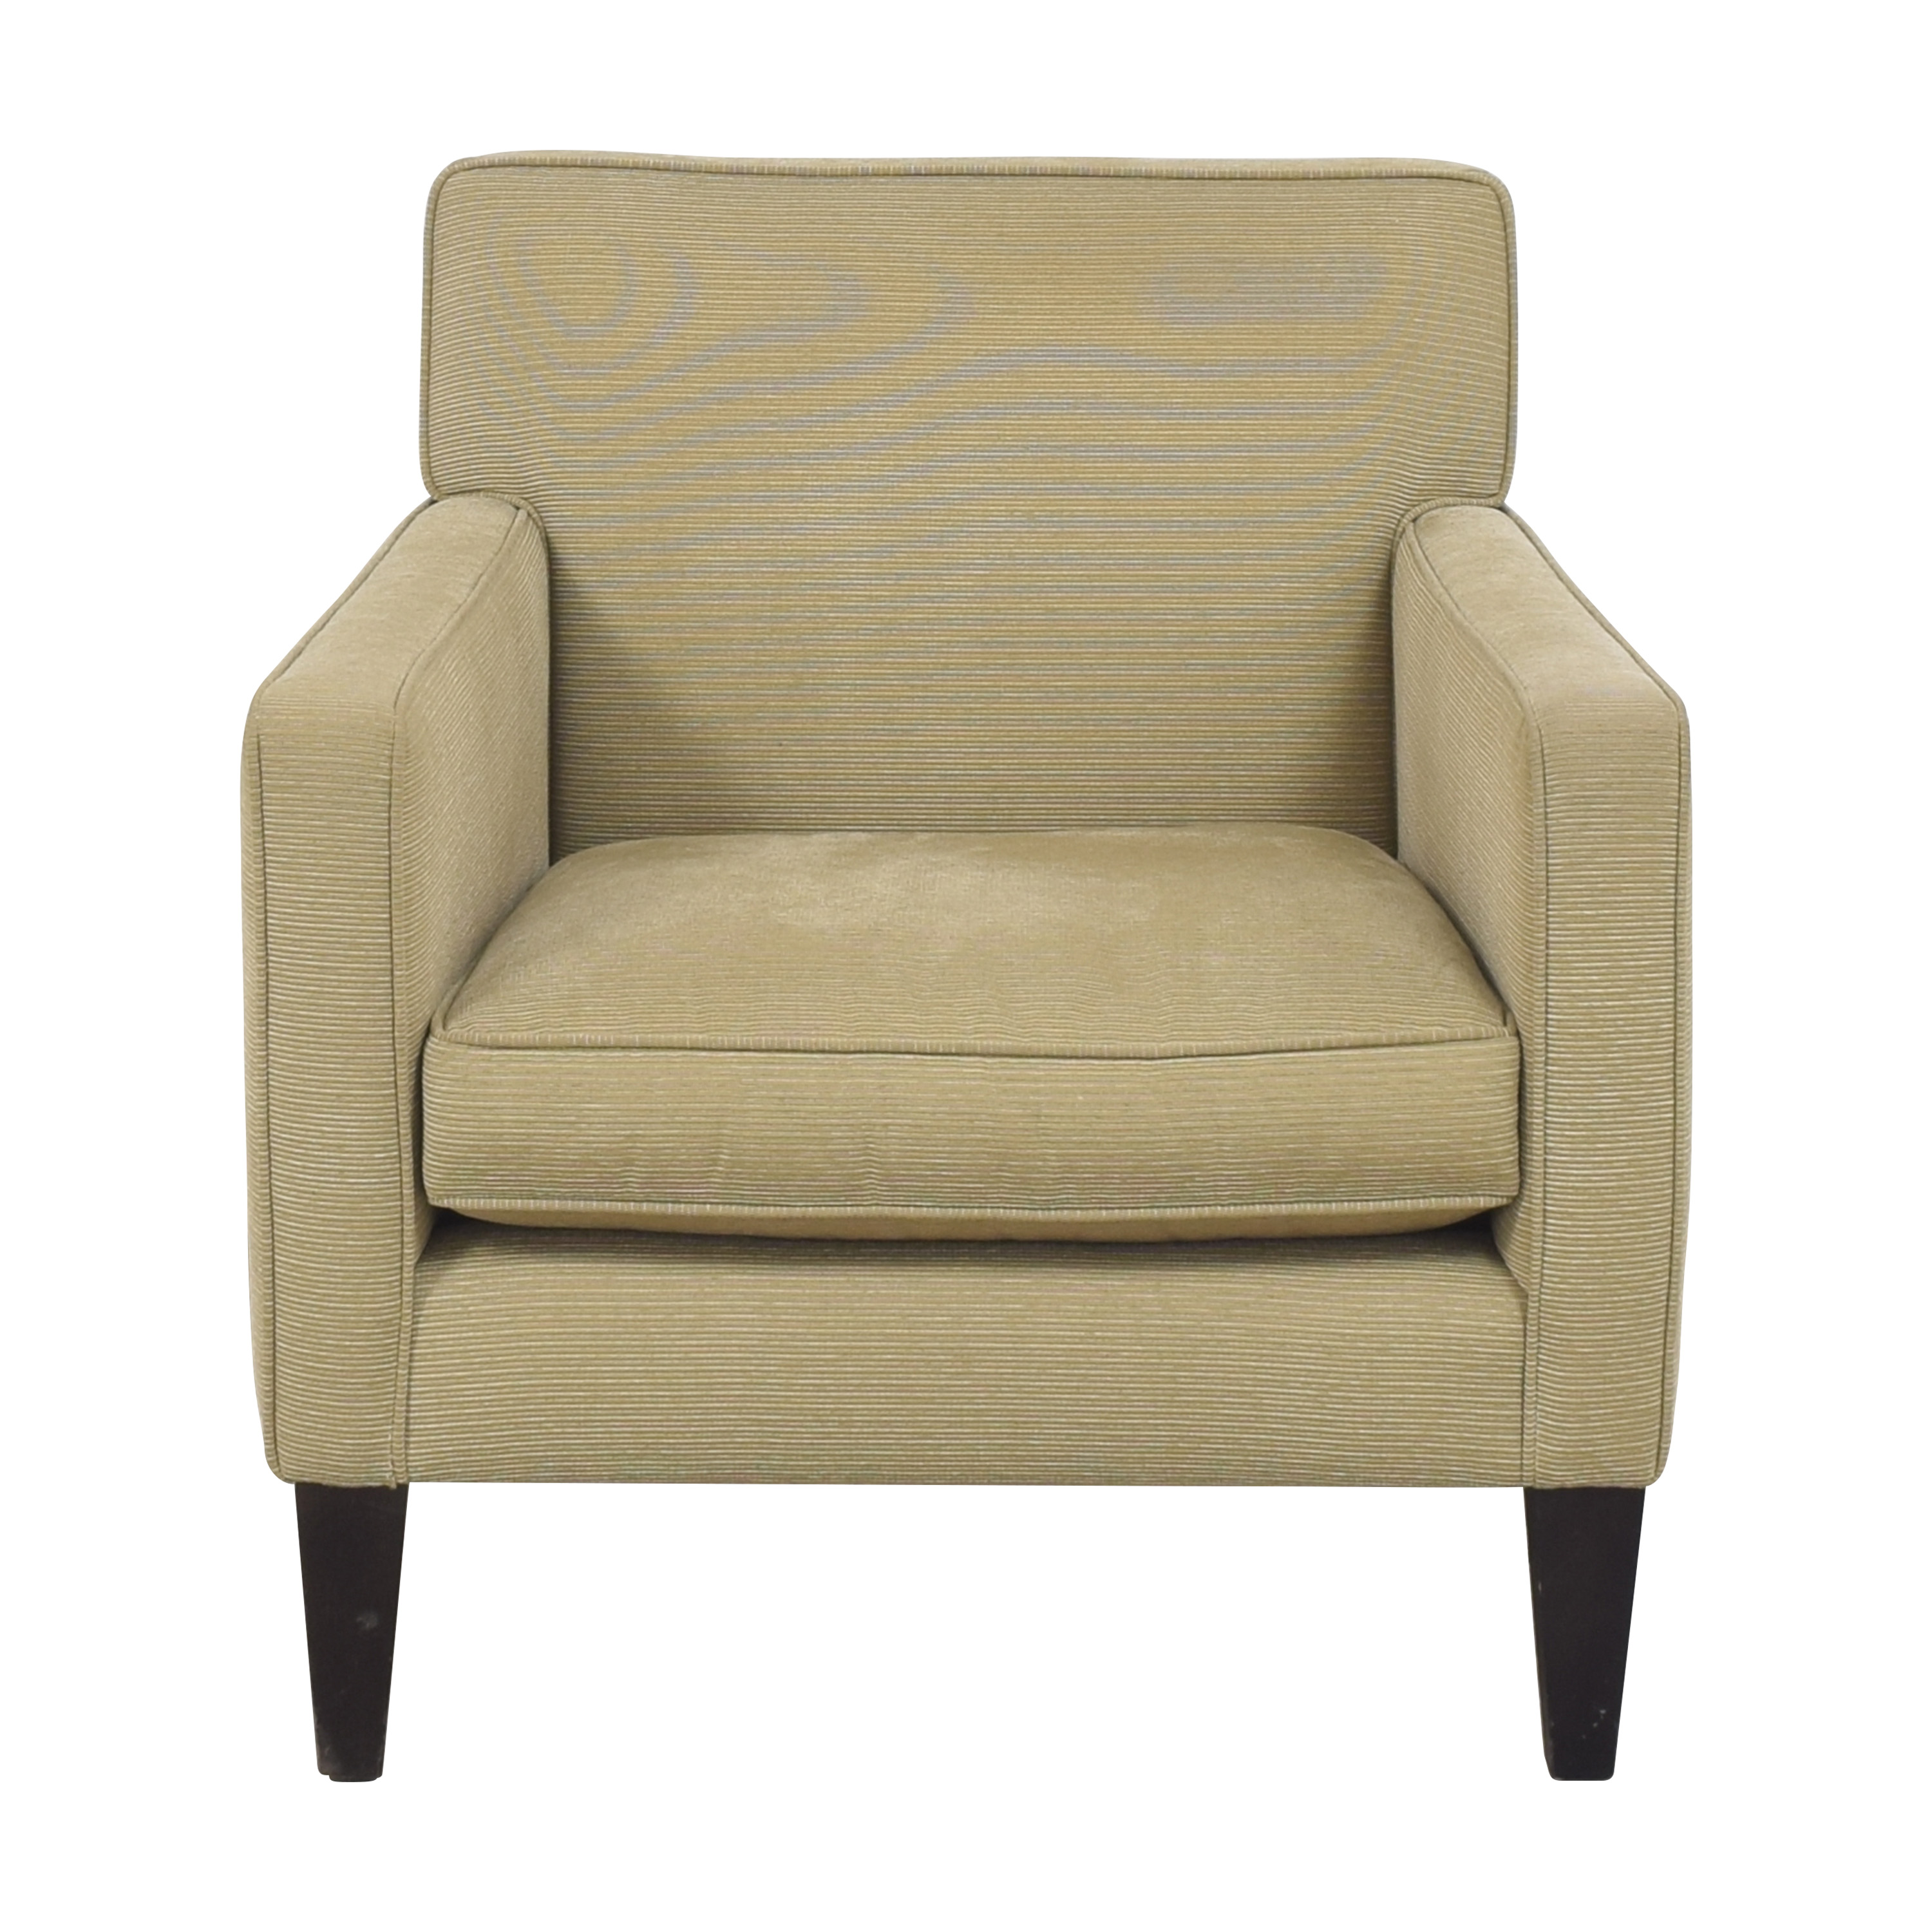 Crate & Barrel Tight Back Accent Chair / Accent Chairs